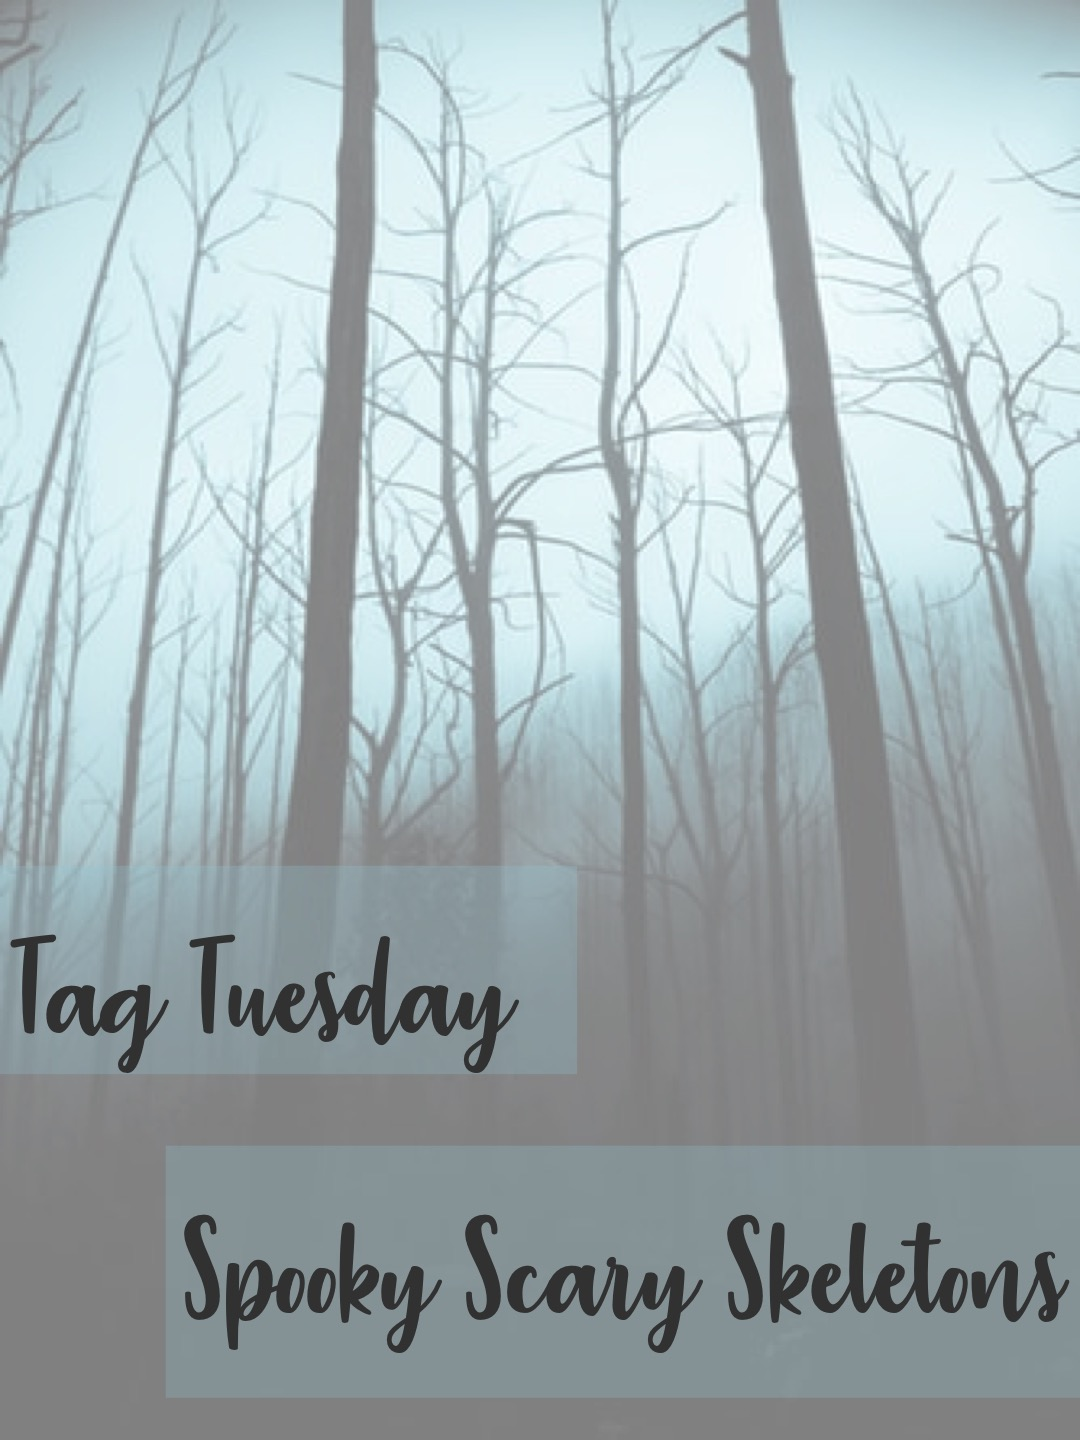 Tag Tuesday: Spooky Scary Skeletons